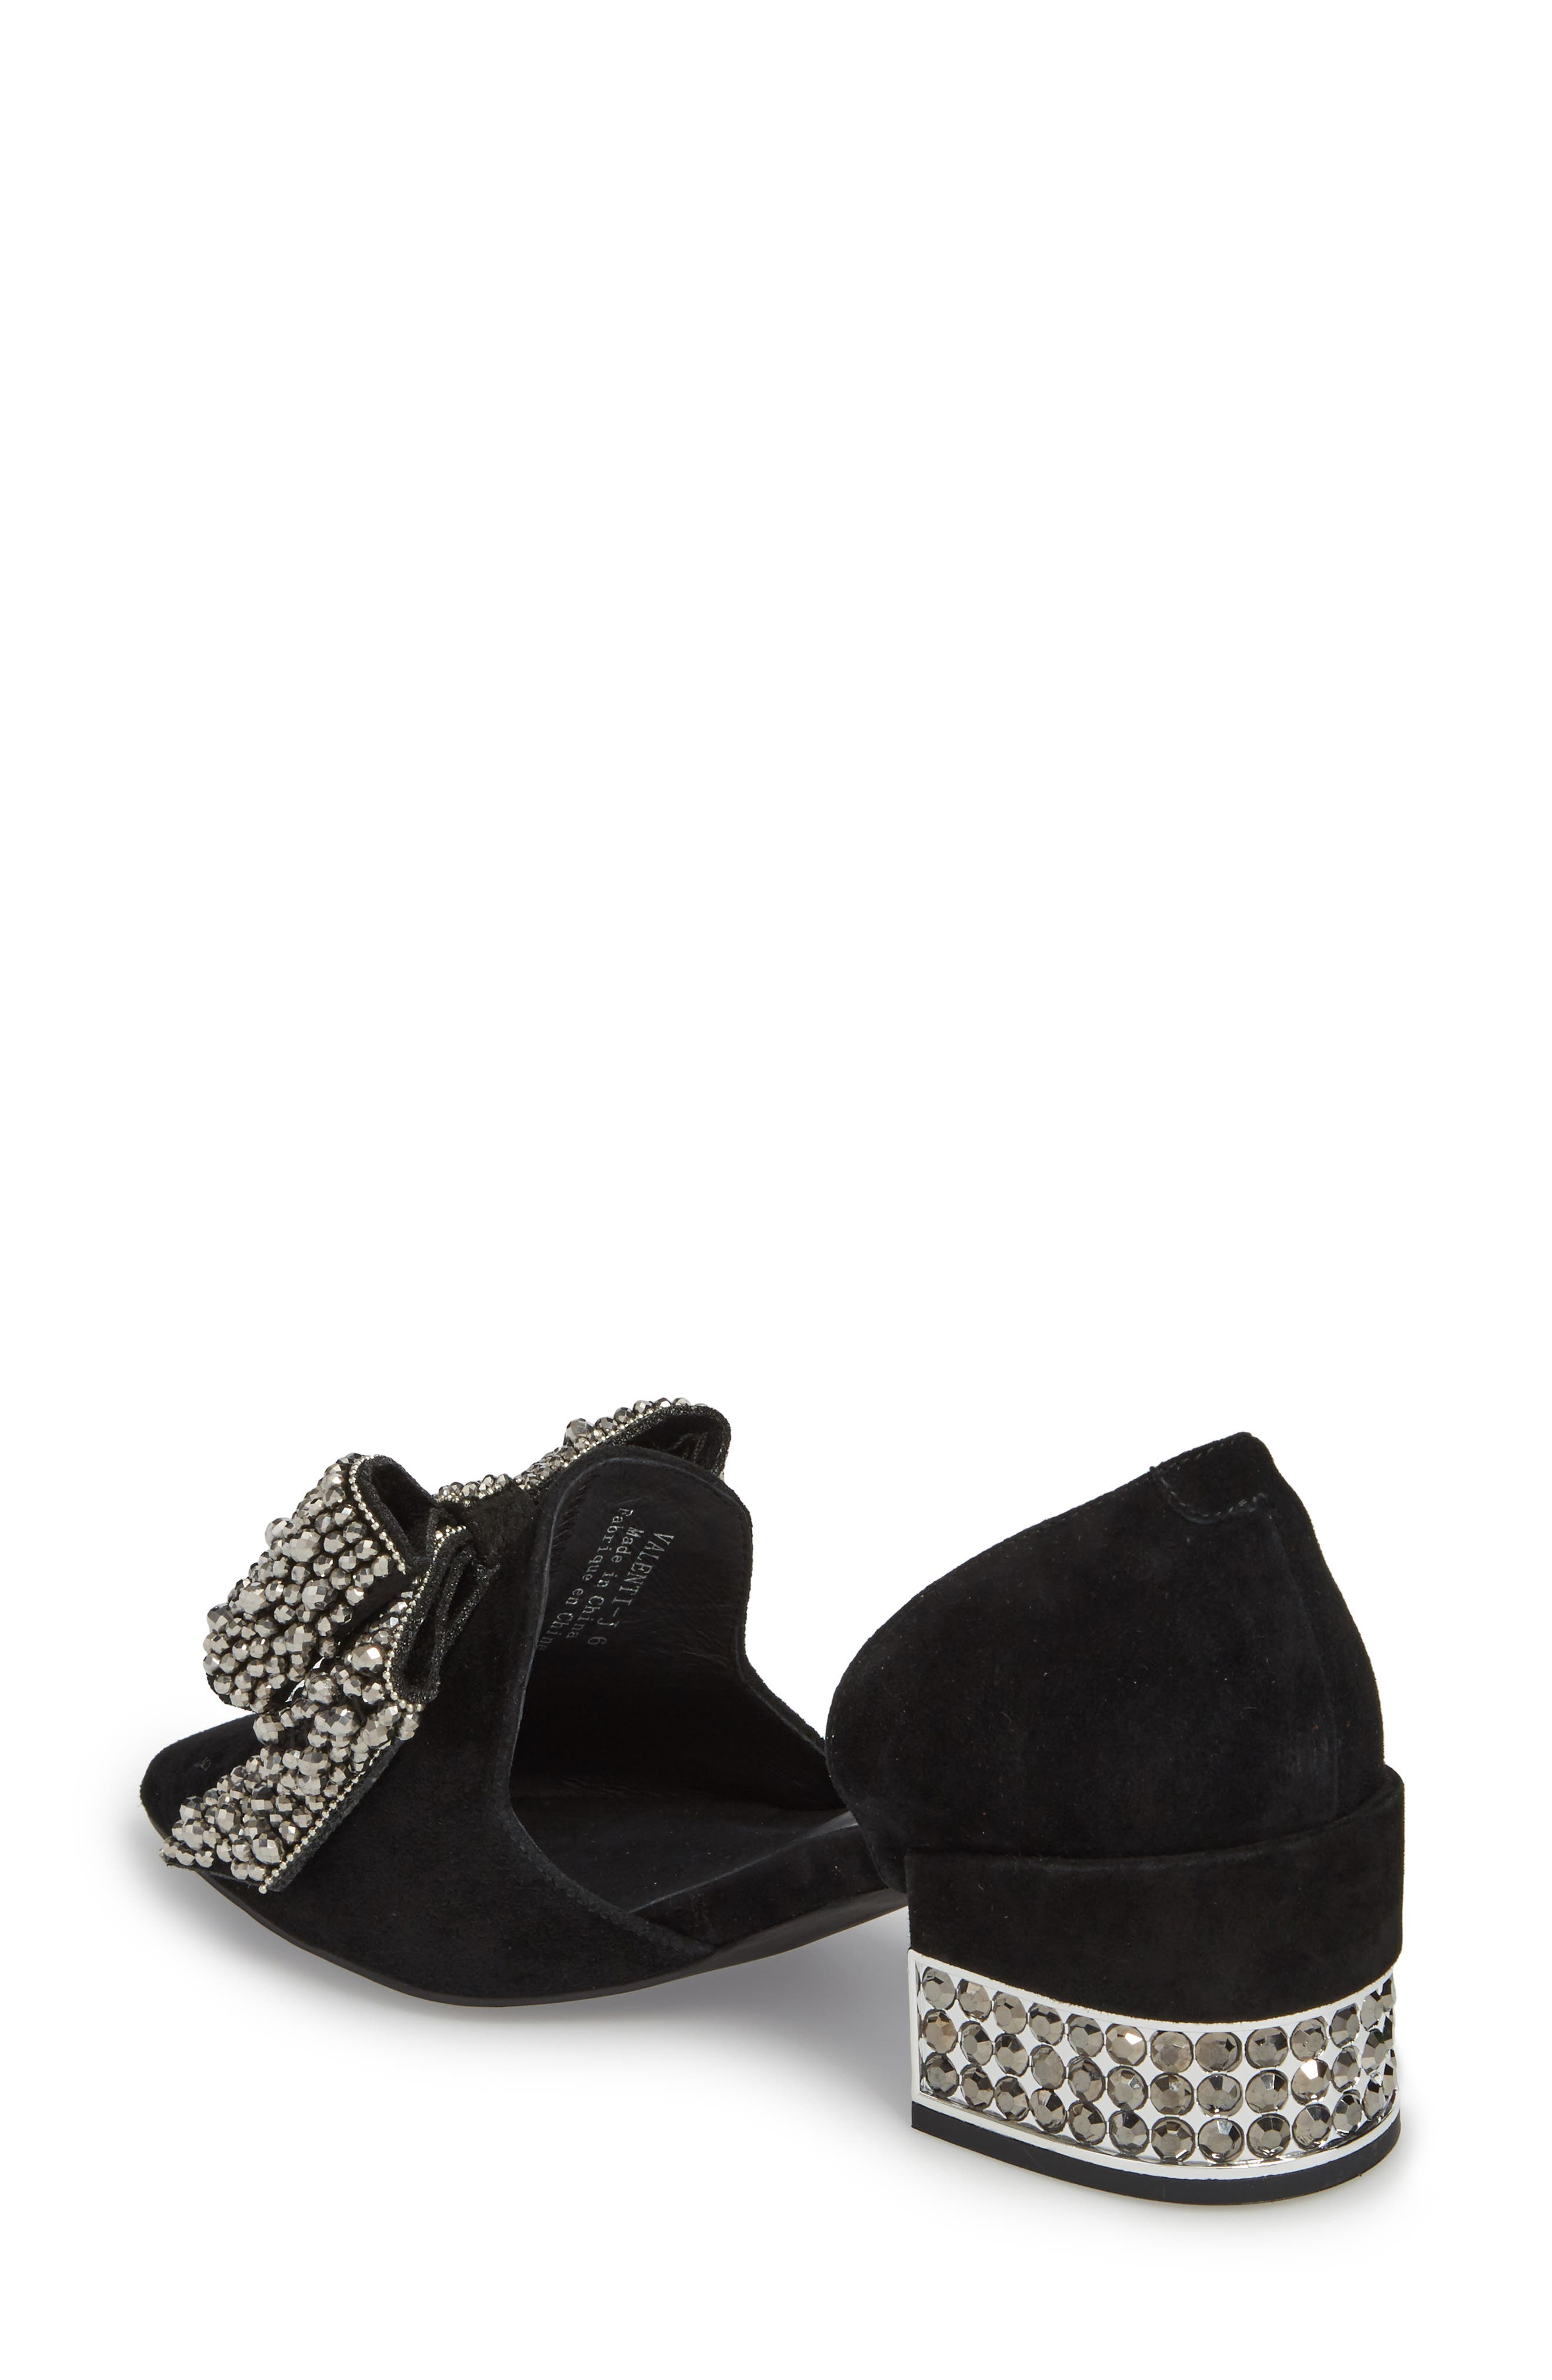 Valenti Embellished Bow Loafer,                             Alternate thumbnail 2, color,                             001